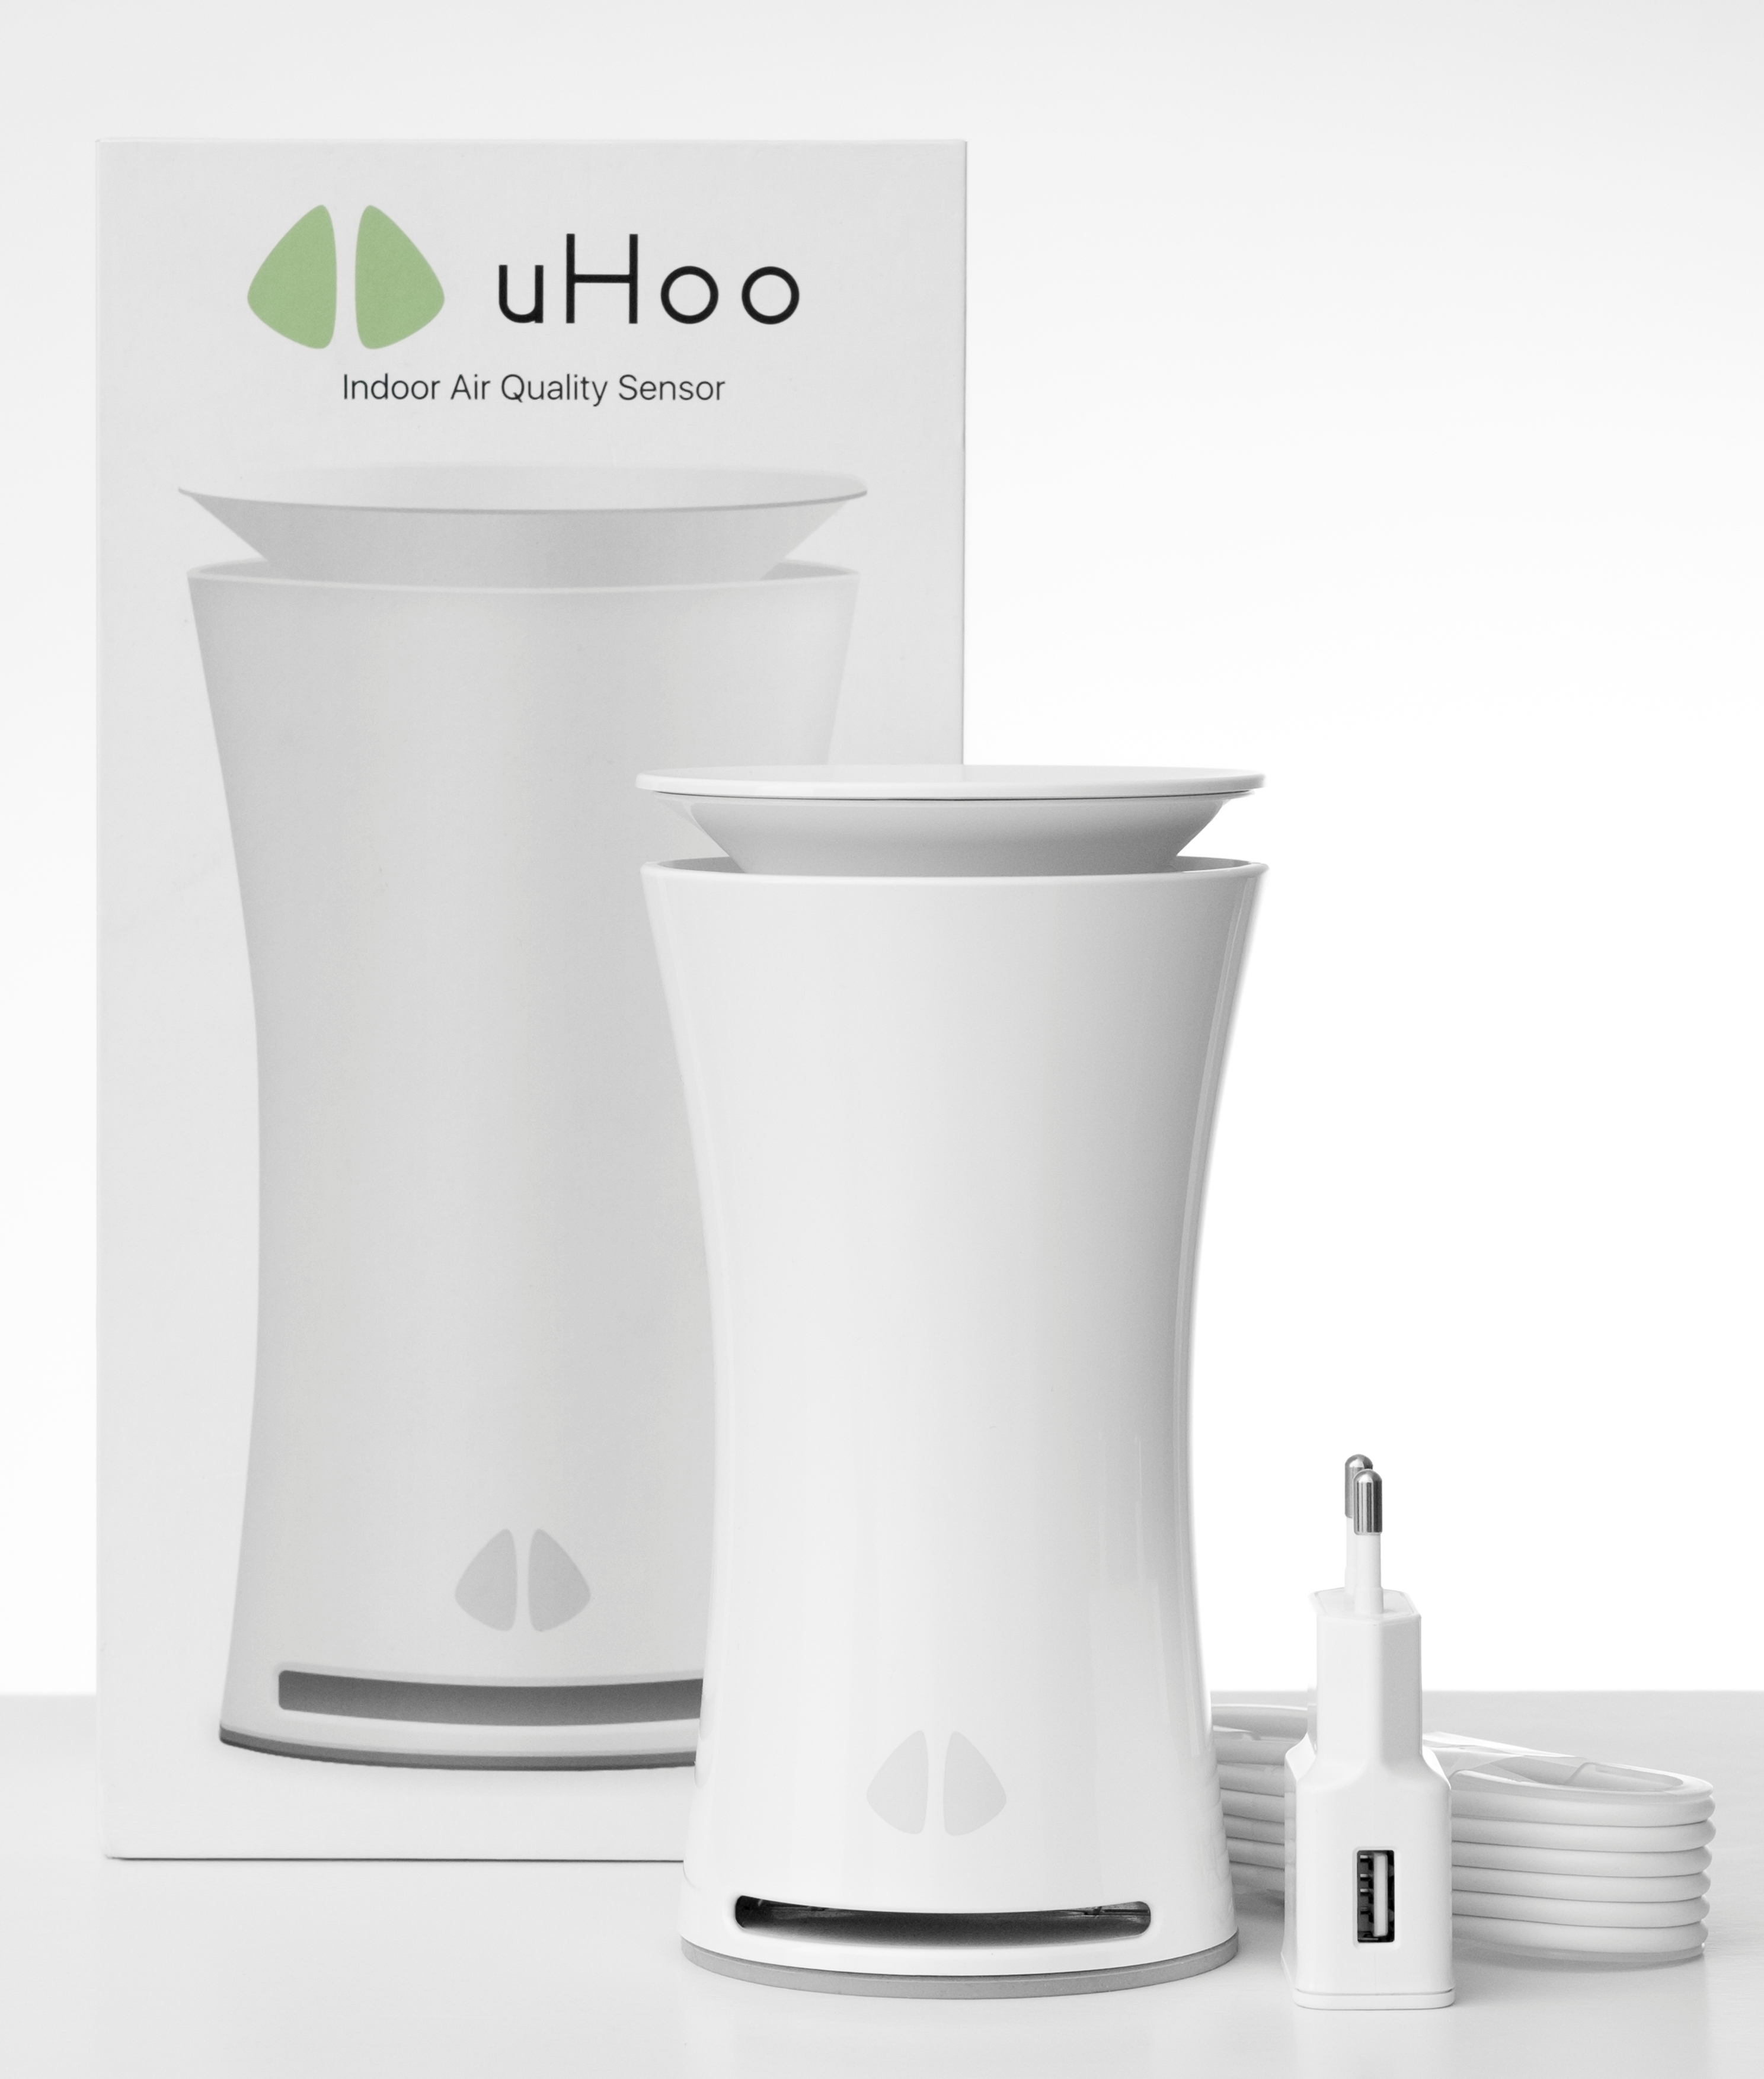 uHoo Indoor Air Sensor4